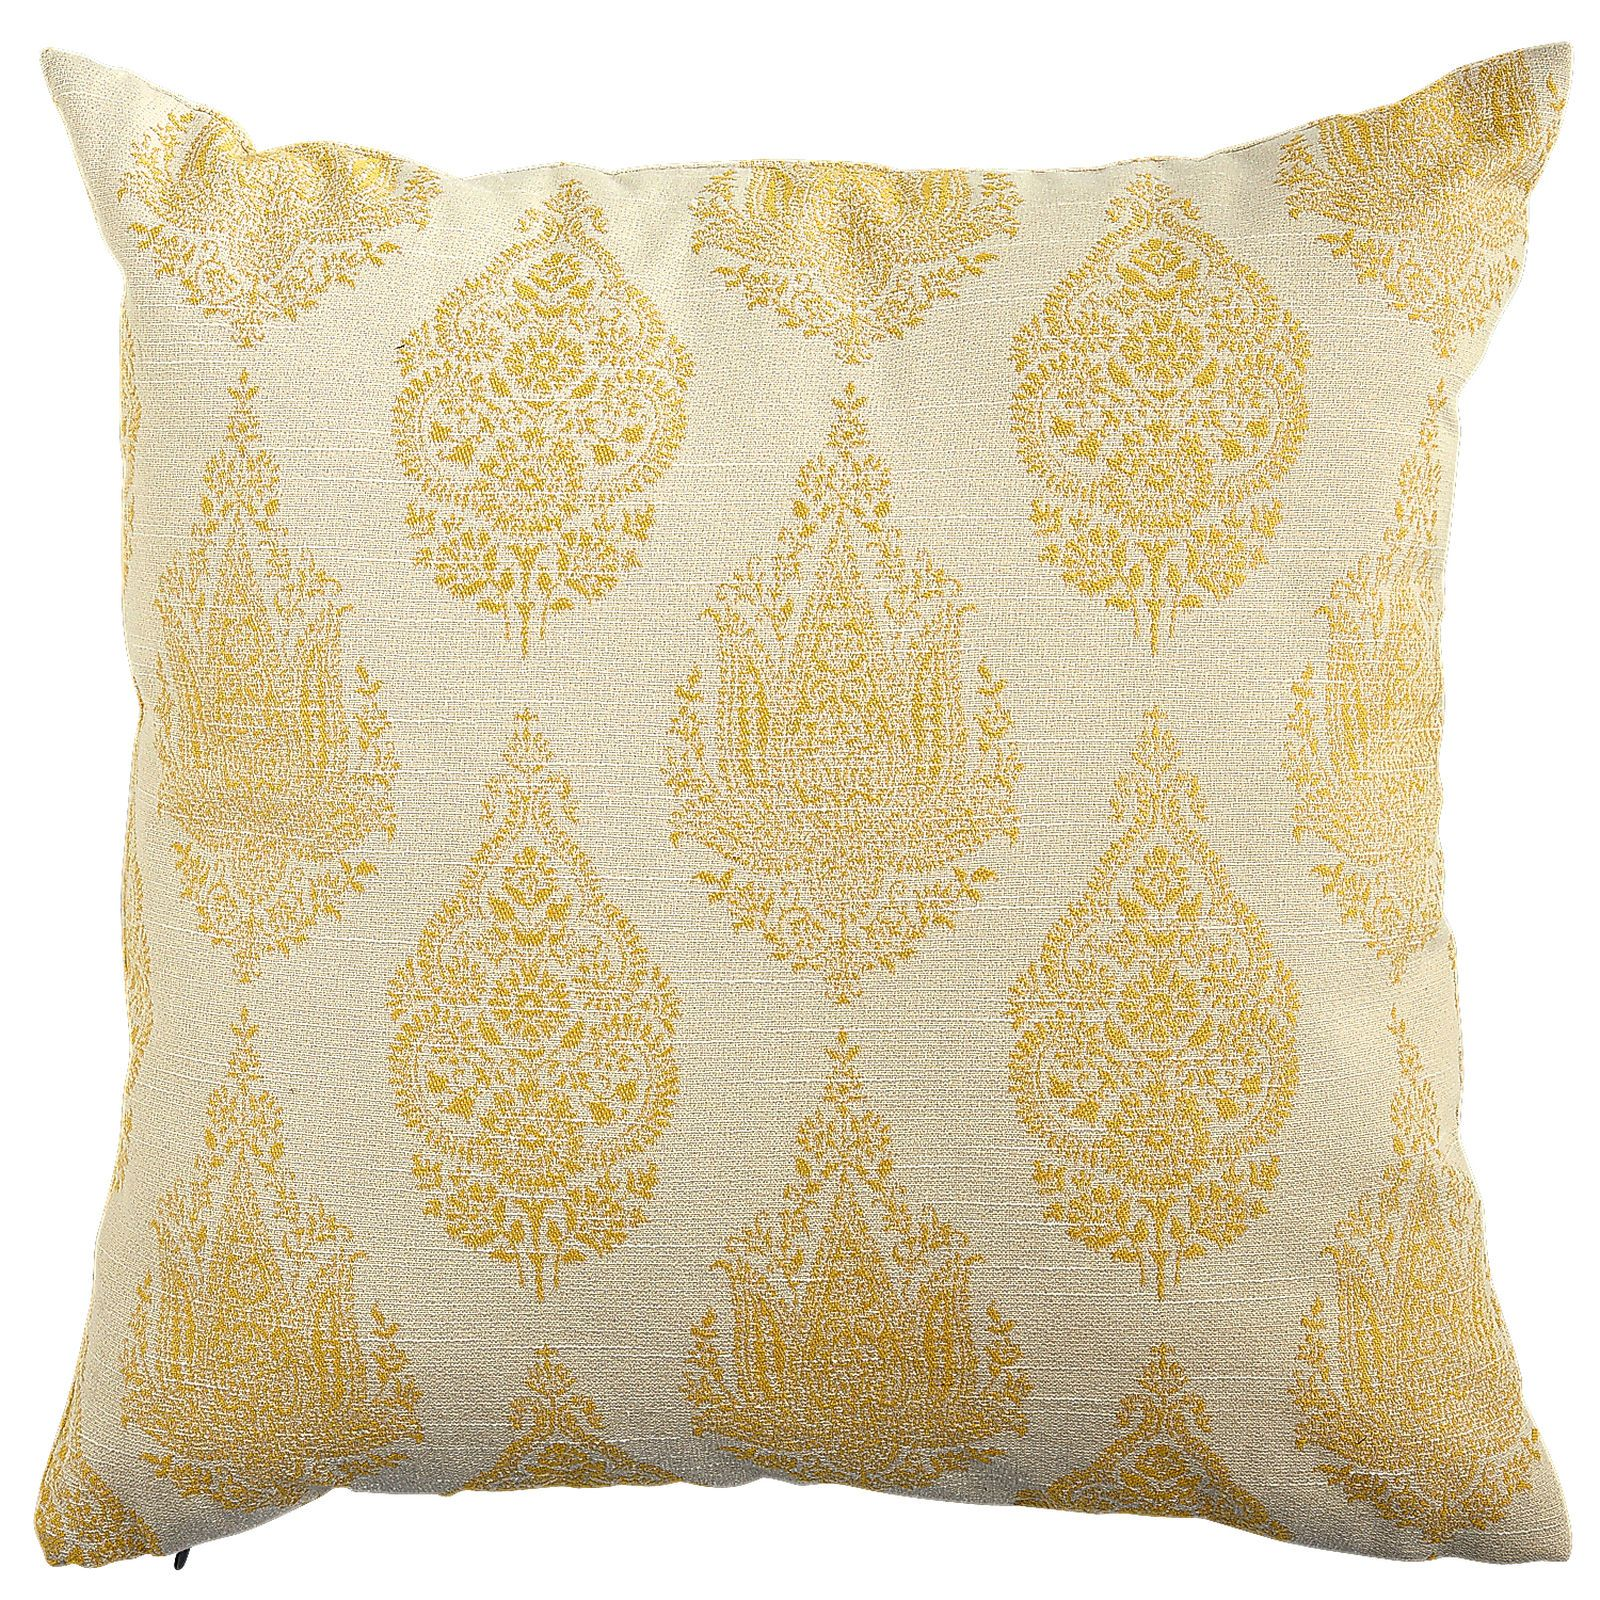 Rambagh Woven Paisley Pillow - Yellow, inspired by the Rambagh Palace, once the private sanctuary of a maharaja and now one of the world's most exclusive hotels from Pier One. Reminds me of the Yellow Cascade pillow from potterybarn that I pinned.